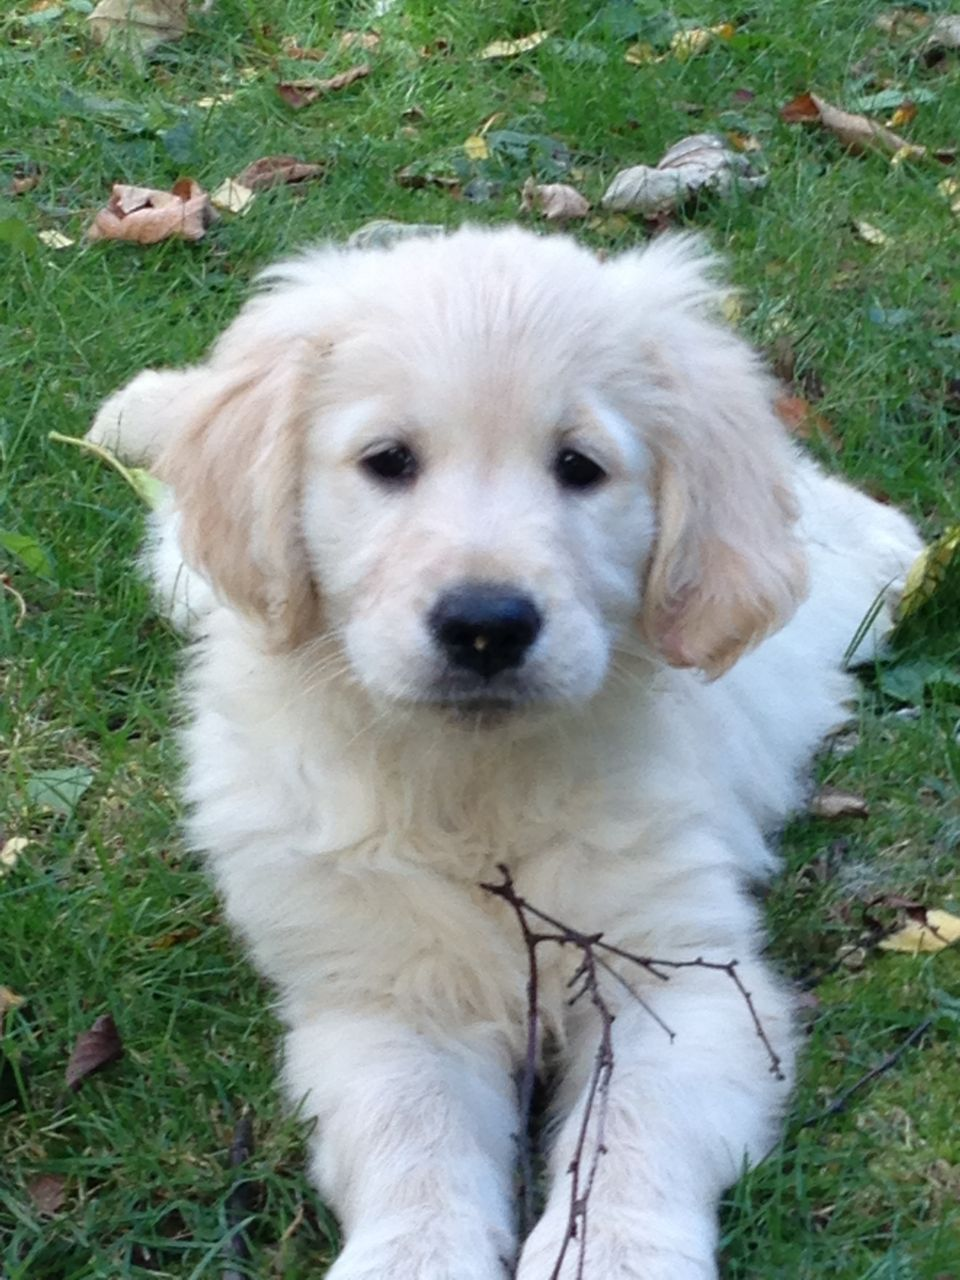 If we don't have any golden retriever puppies for sale at